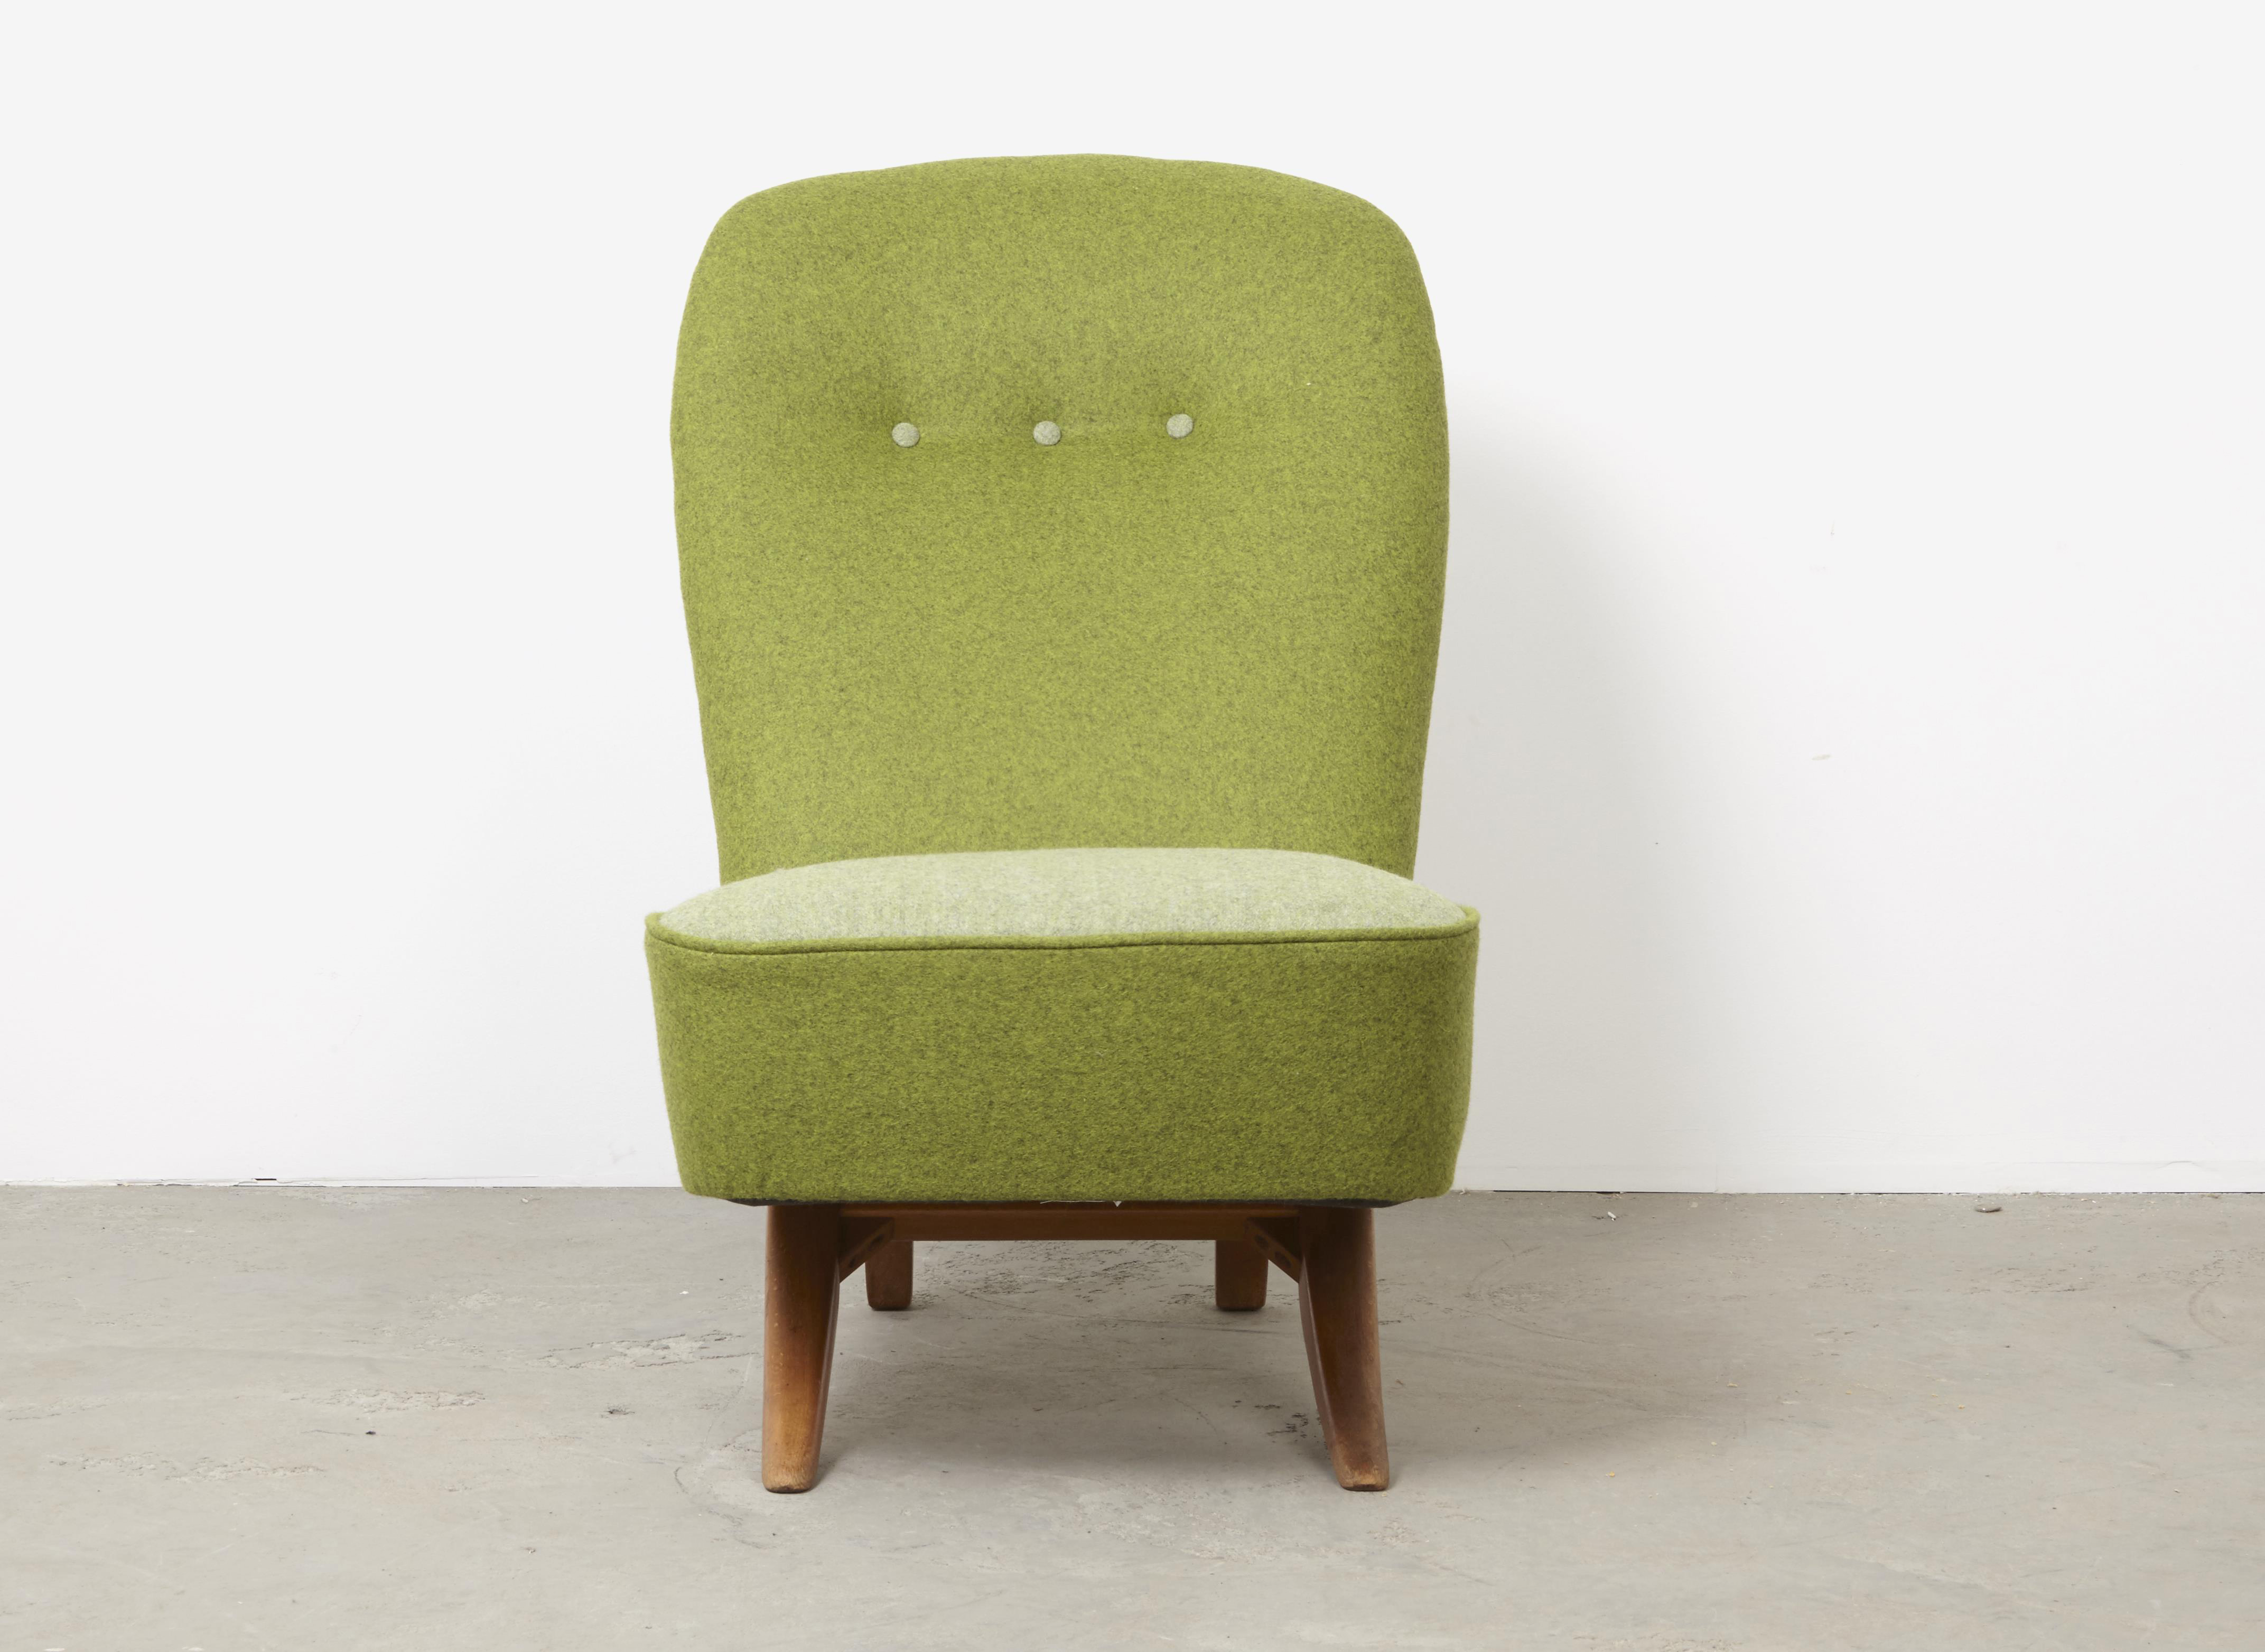 TheoRuth Congo LoungeChair Artifort 50s 1